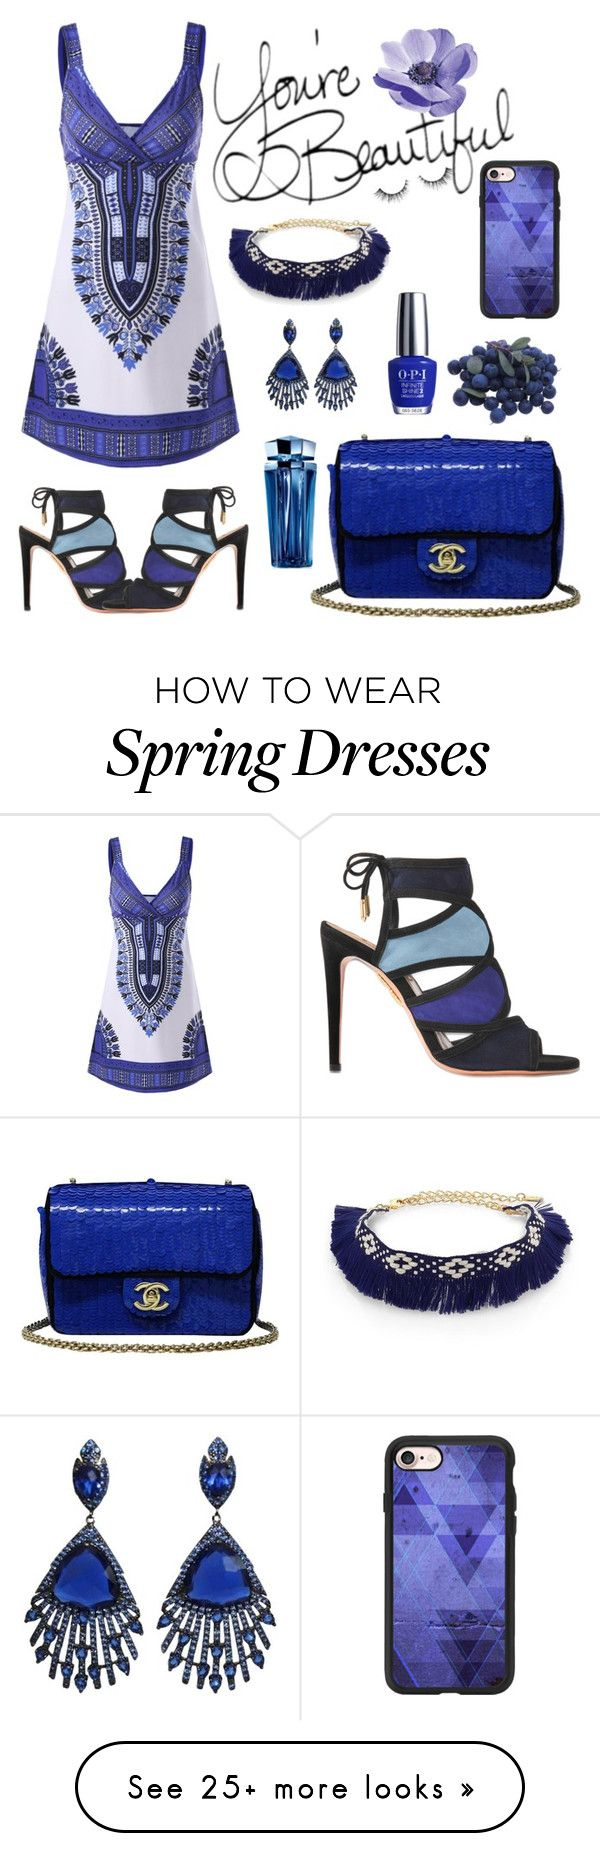 """""""Beautiful Blues"""" by kittyflare on Polyvore featuring Ettika, Aquazzura, Chanel, OPI, Casetify, Thierry Mugler and MemorableNight"""